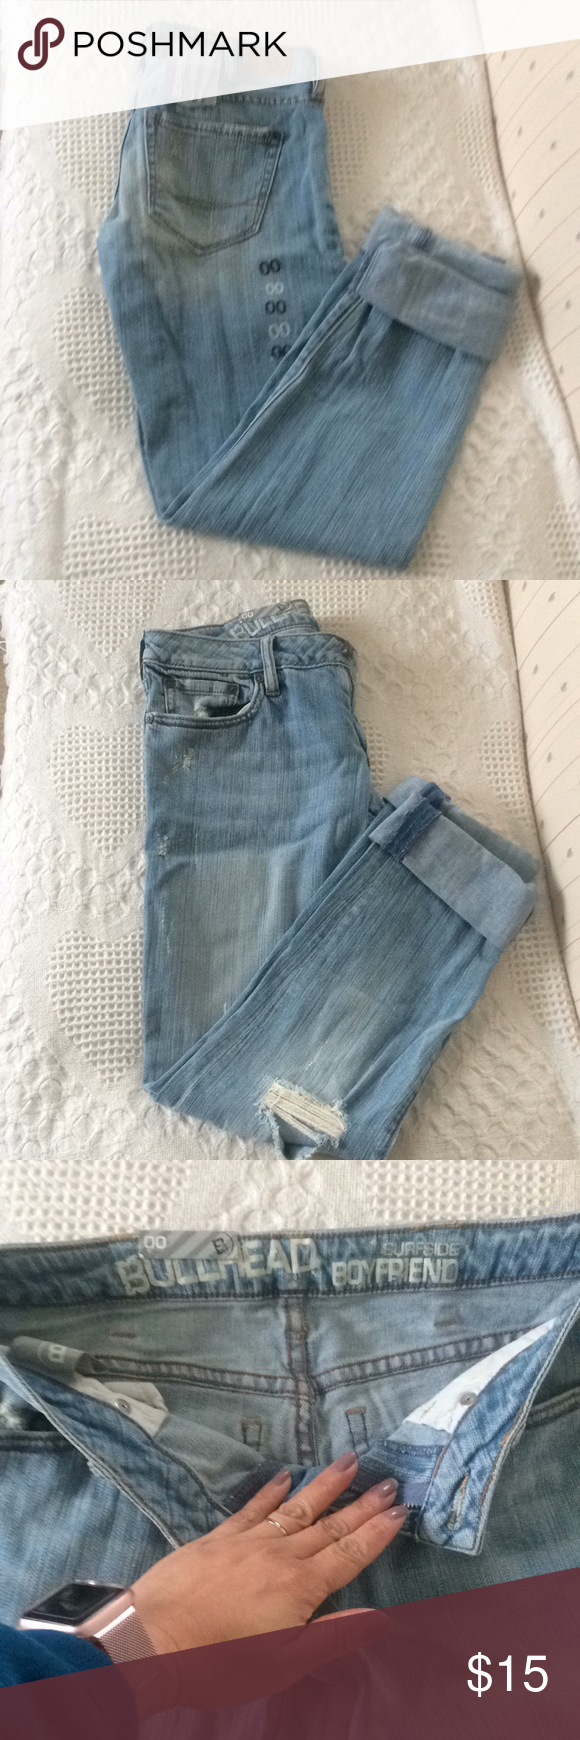 🍀Bullhead NWT.🍀 JNS#0011 Brand new with original tag. 99% Cotton & 1% Spandex. Inseam measurement- 29 inches long. Ripped are design in the pants. Bullhead Pants Skinny